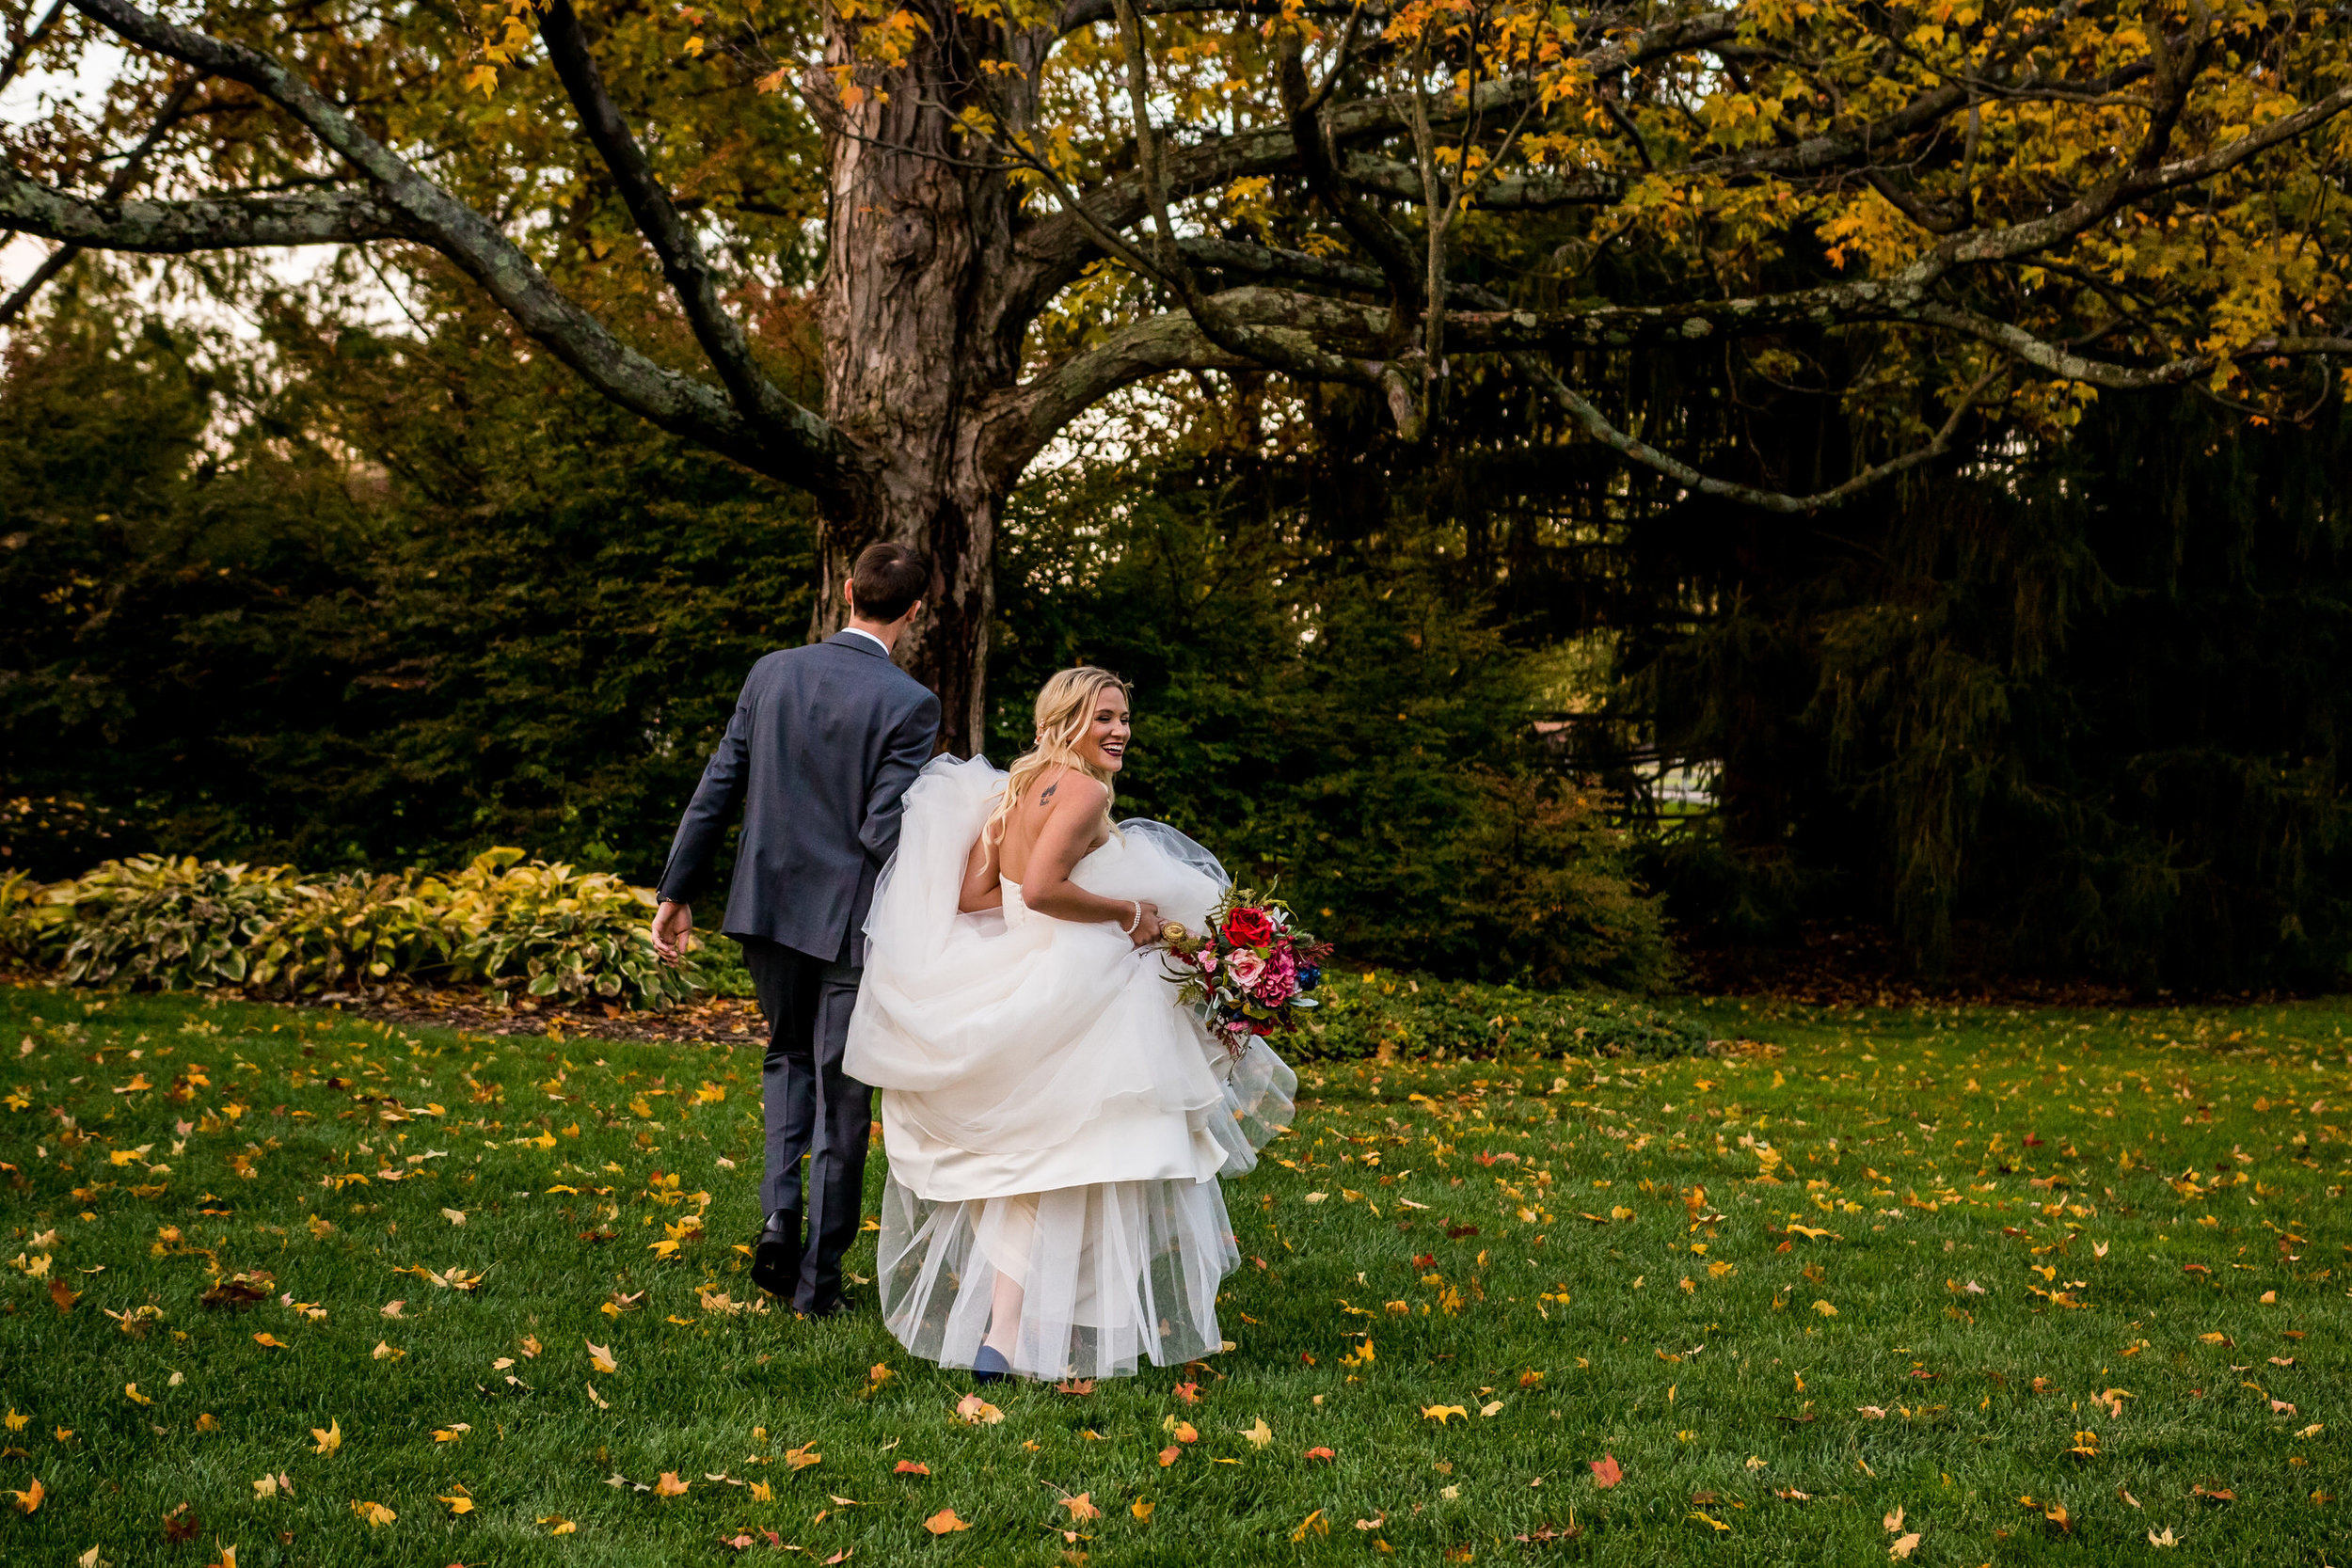 Dayton Ohio Wedding Photography 11843.JPG